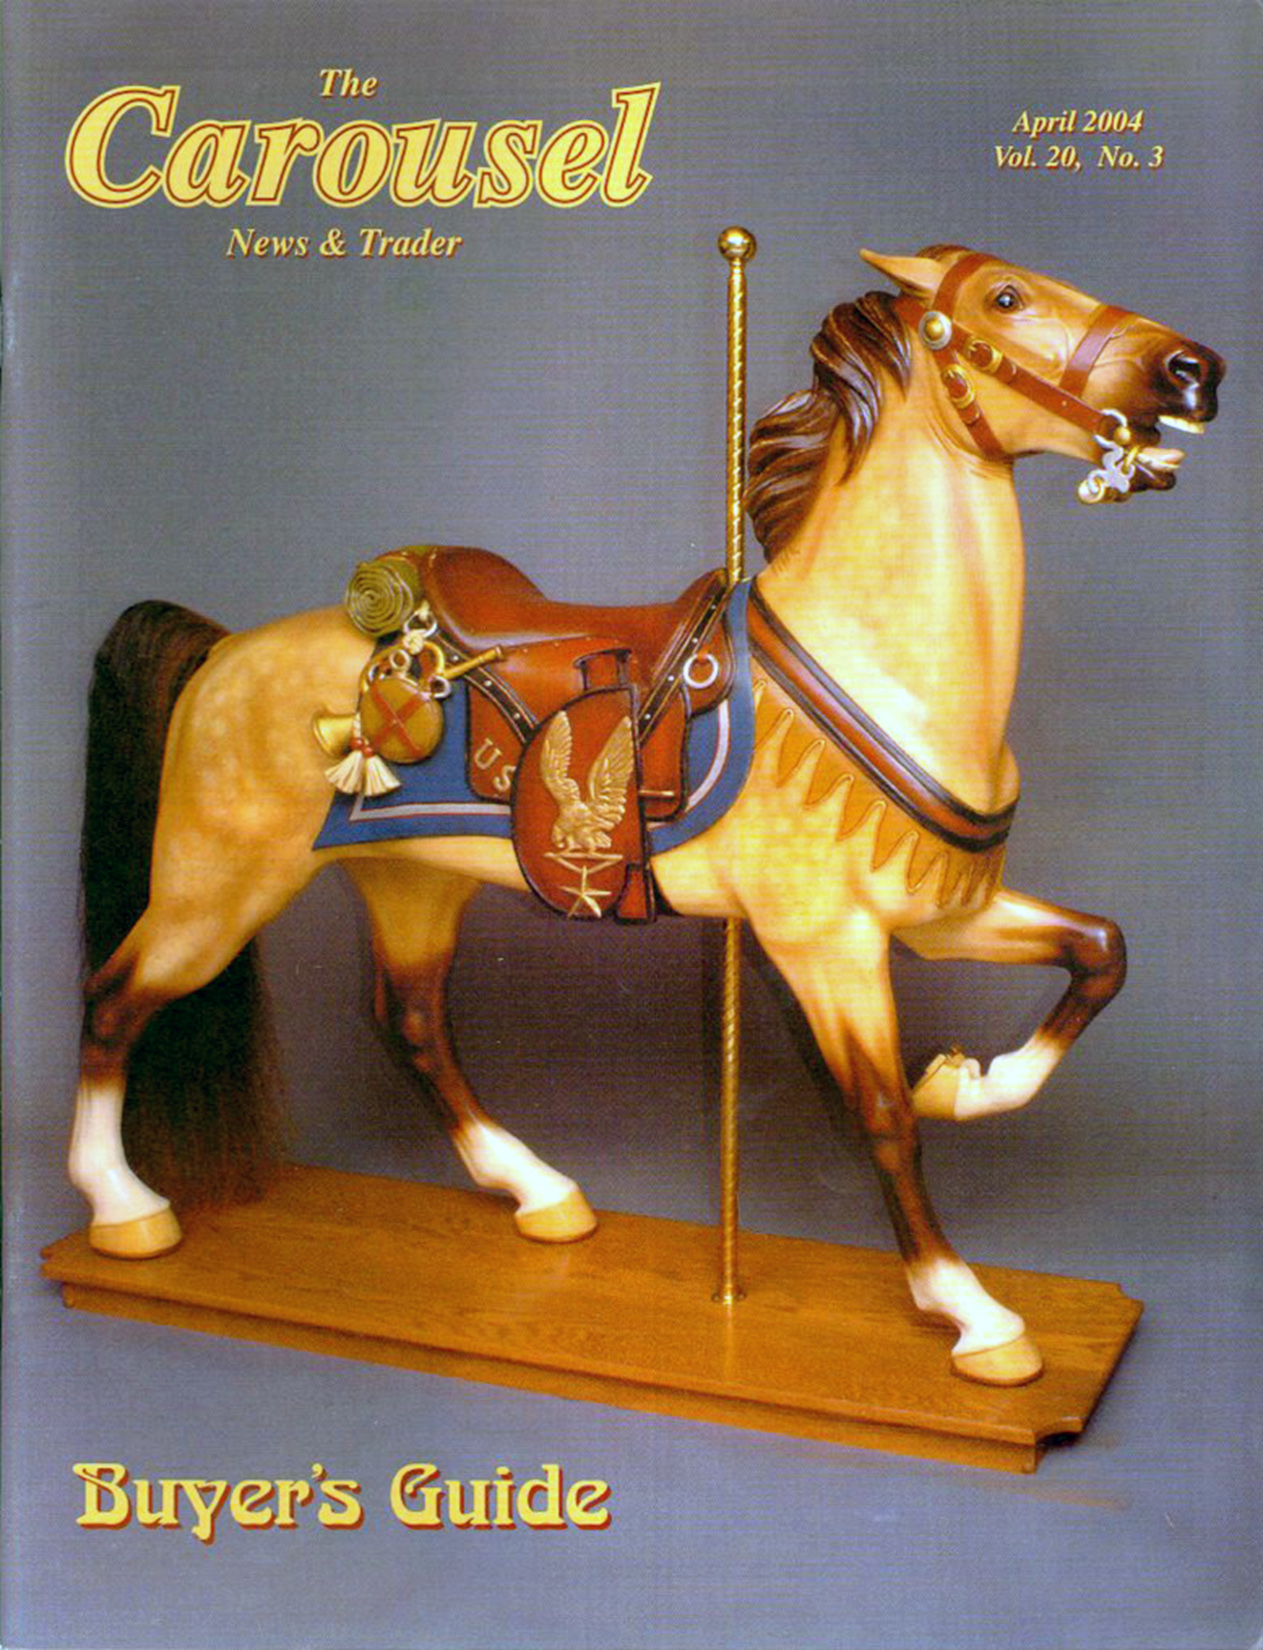 cnt_04_2004-Mexican-Muller-cavalry-military-carousel-horse